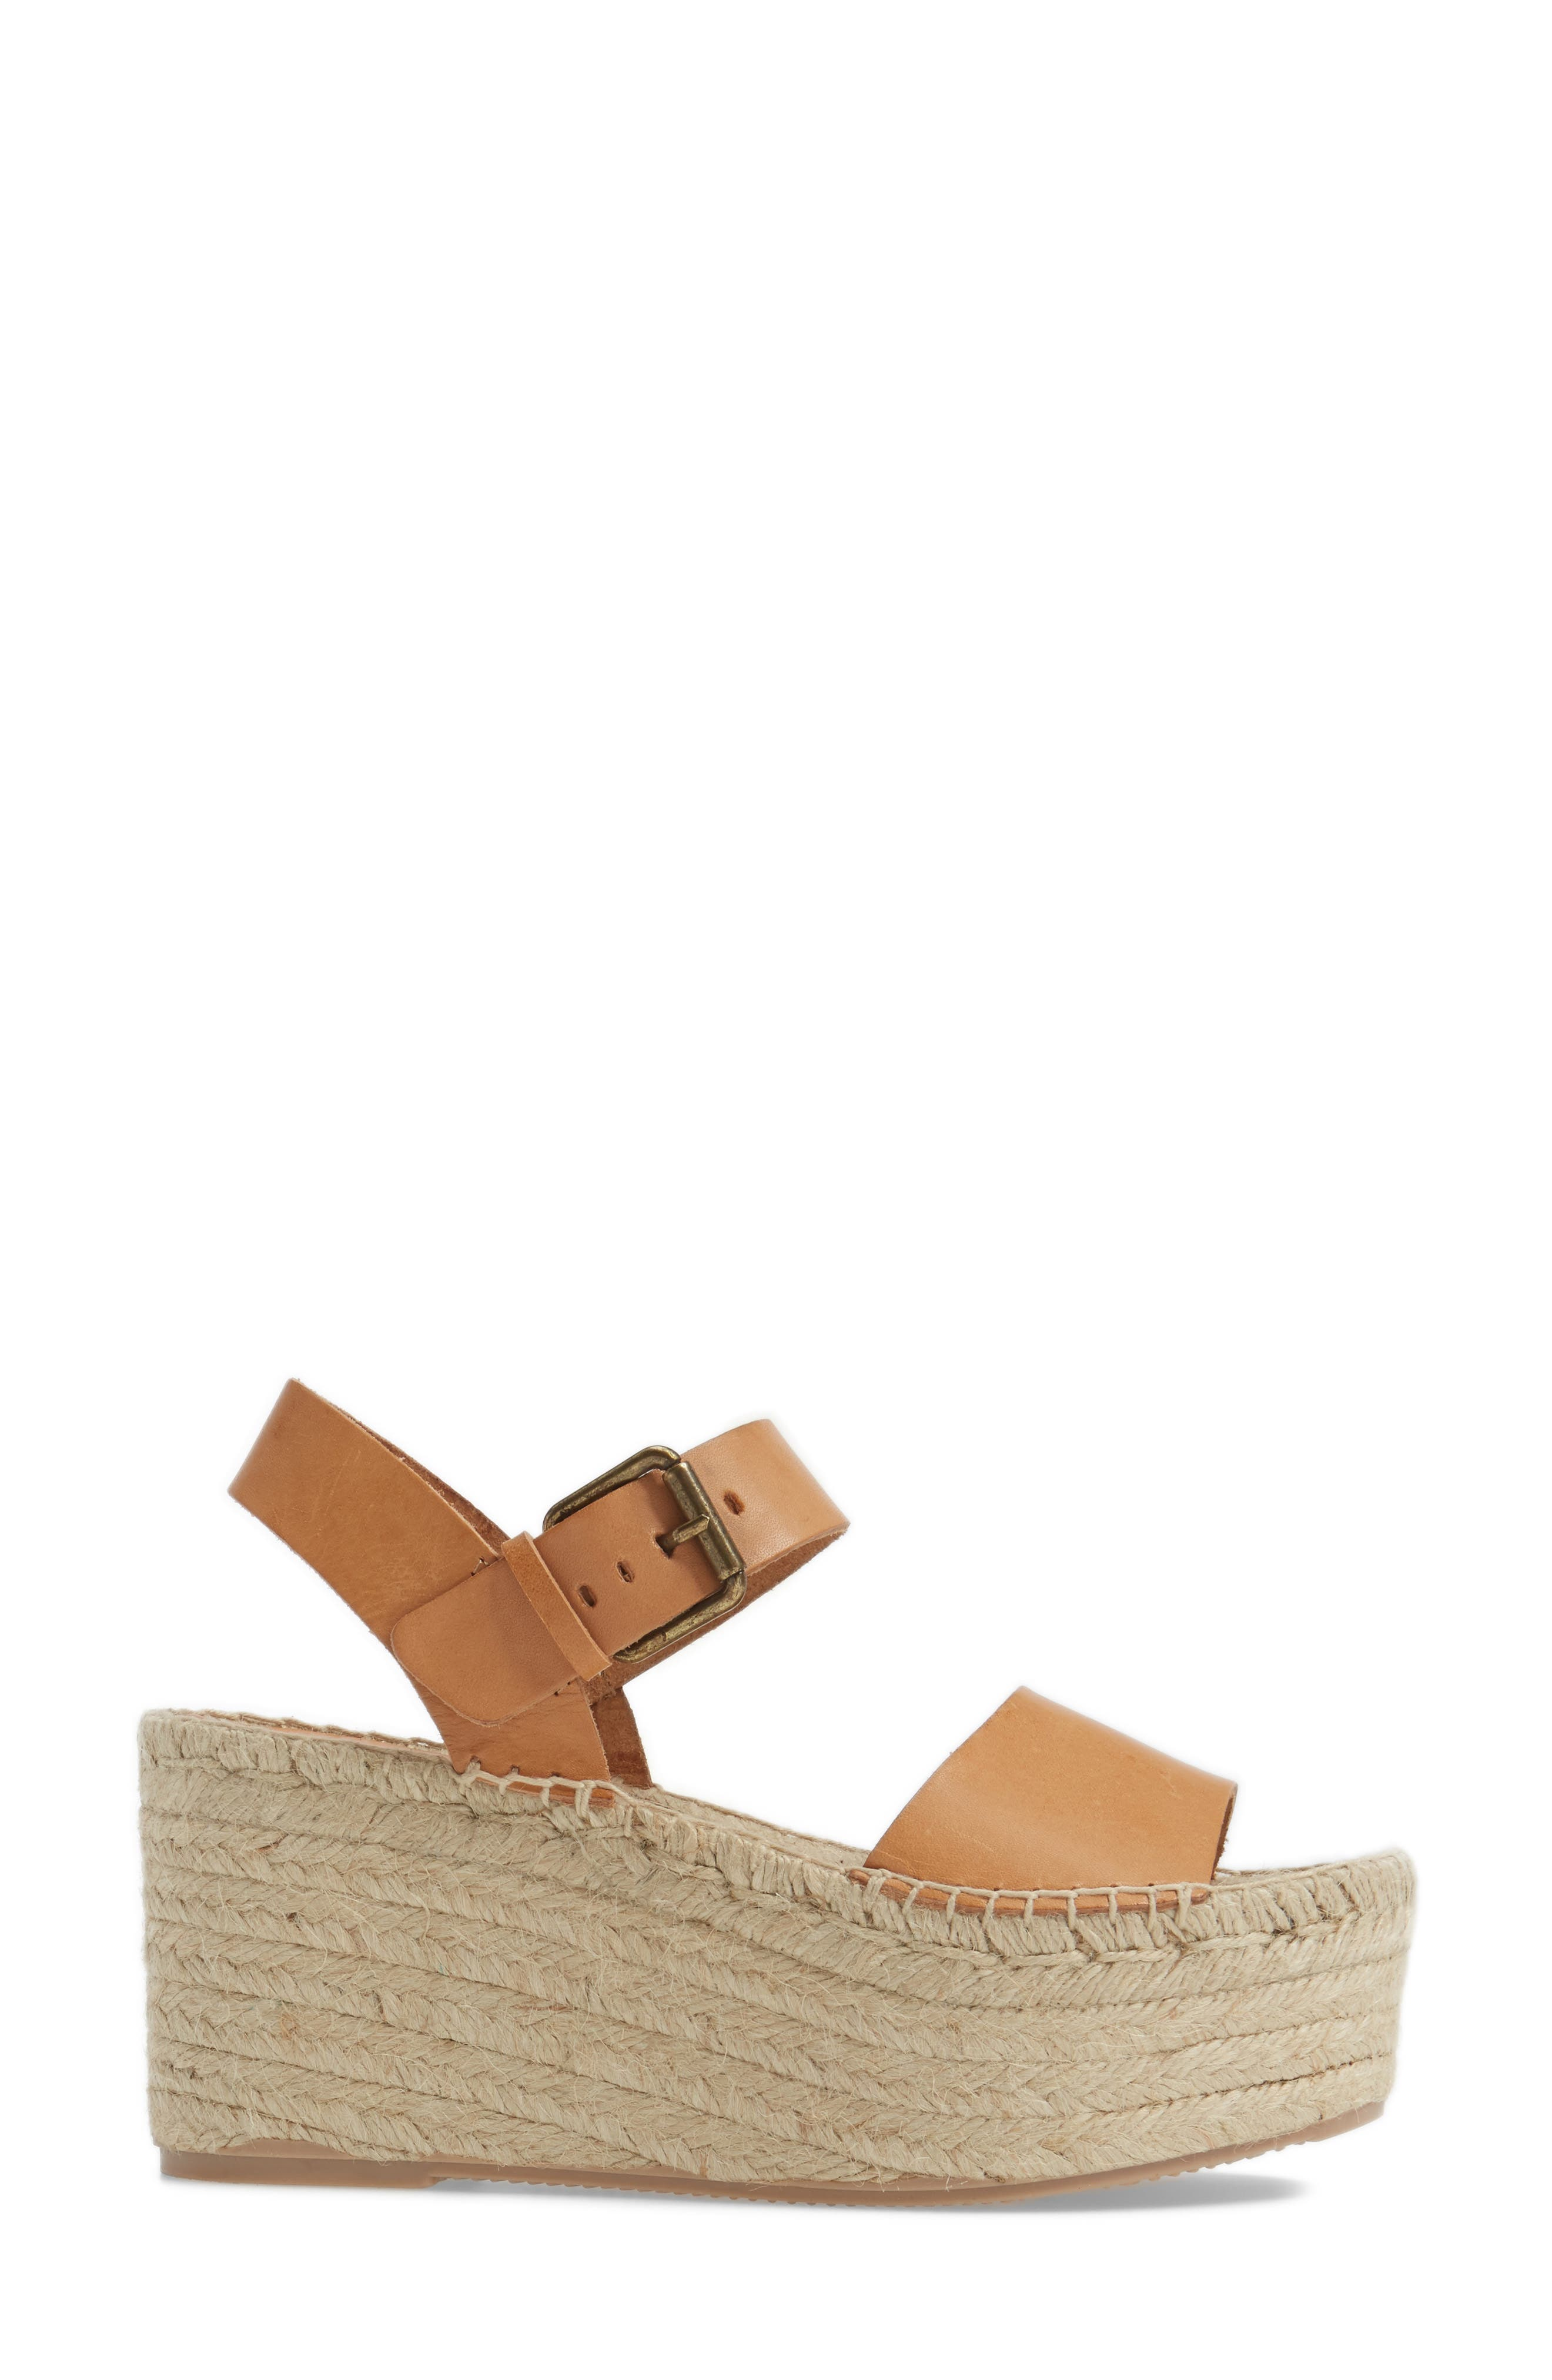 Alternate Image 3  - Soludos Platform Wedge Sandal (Women)